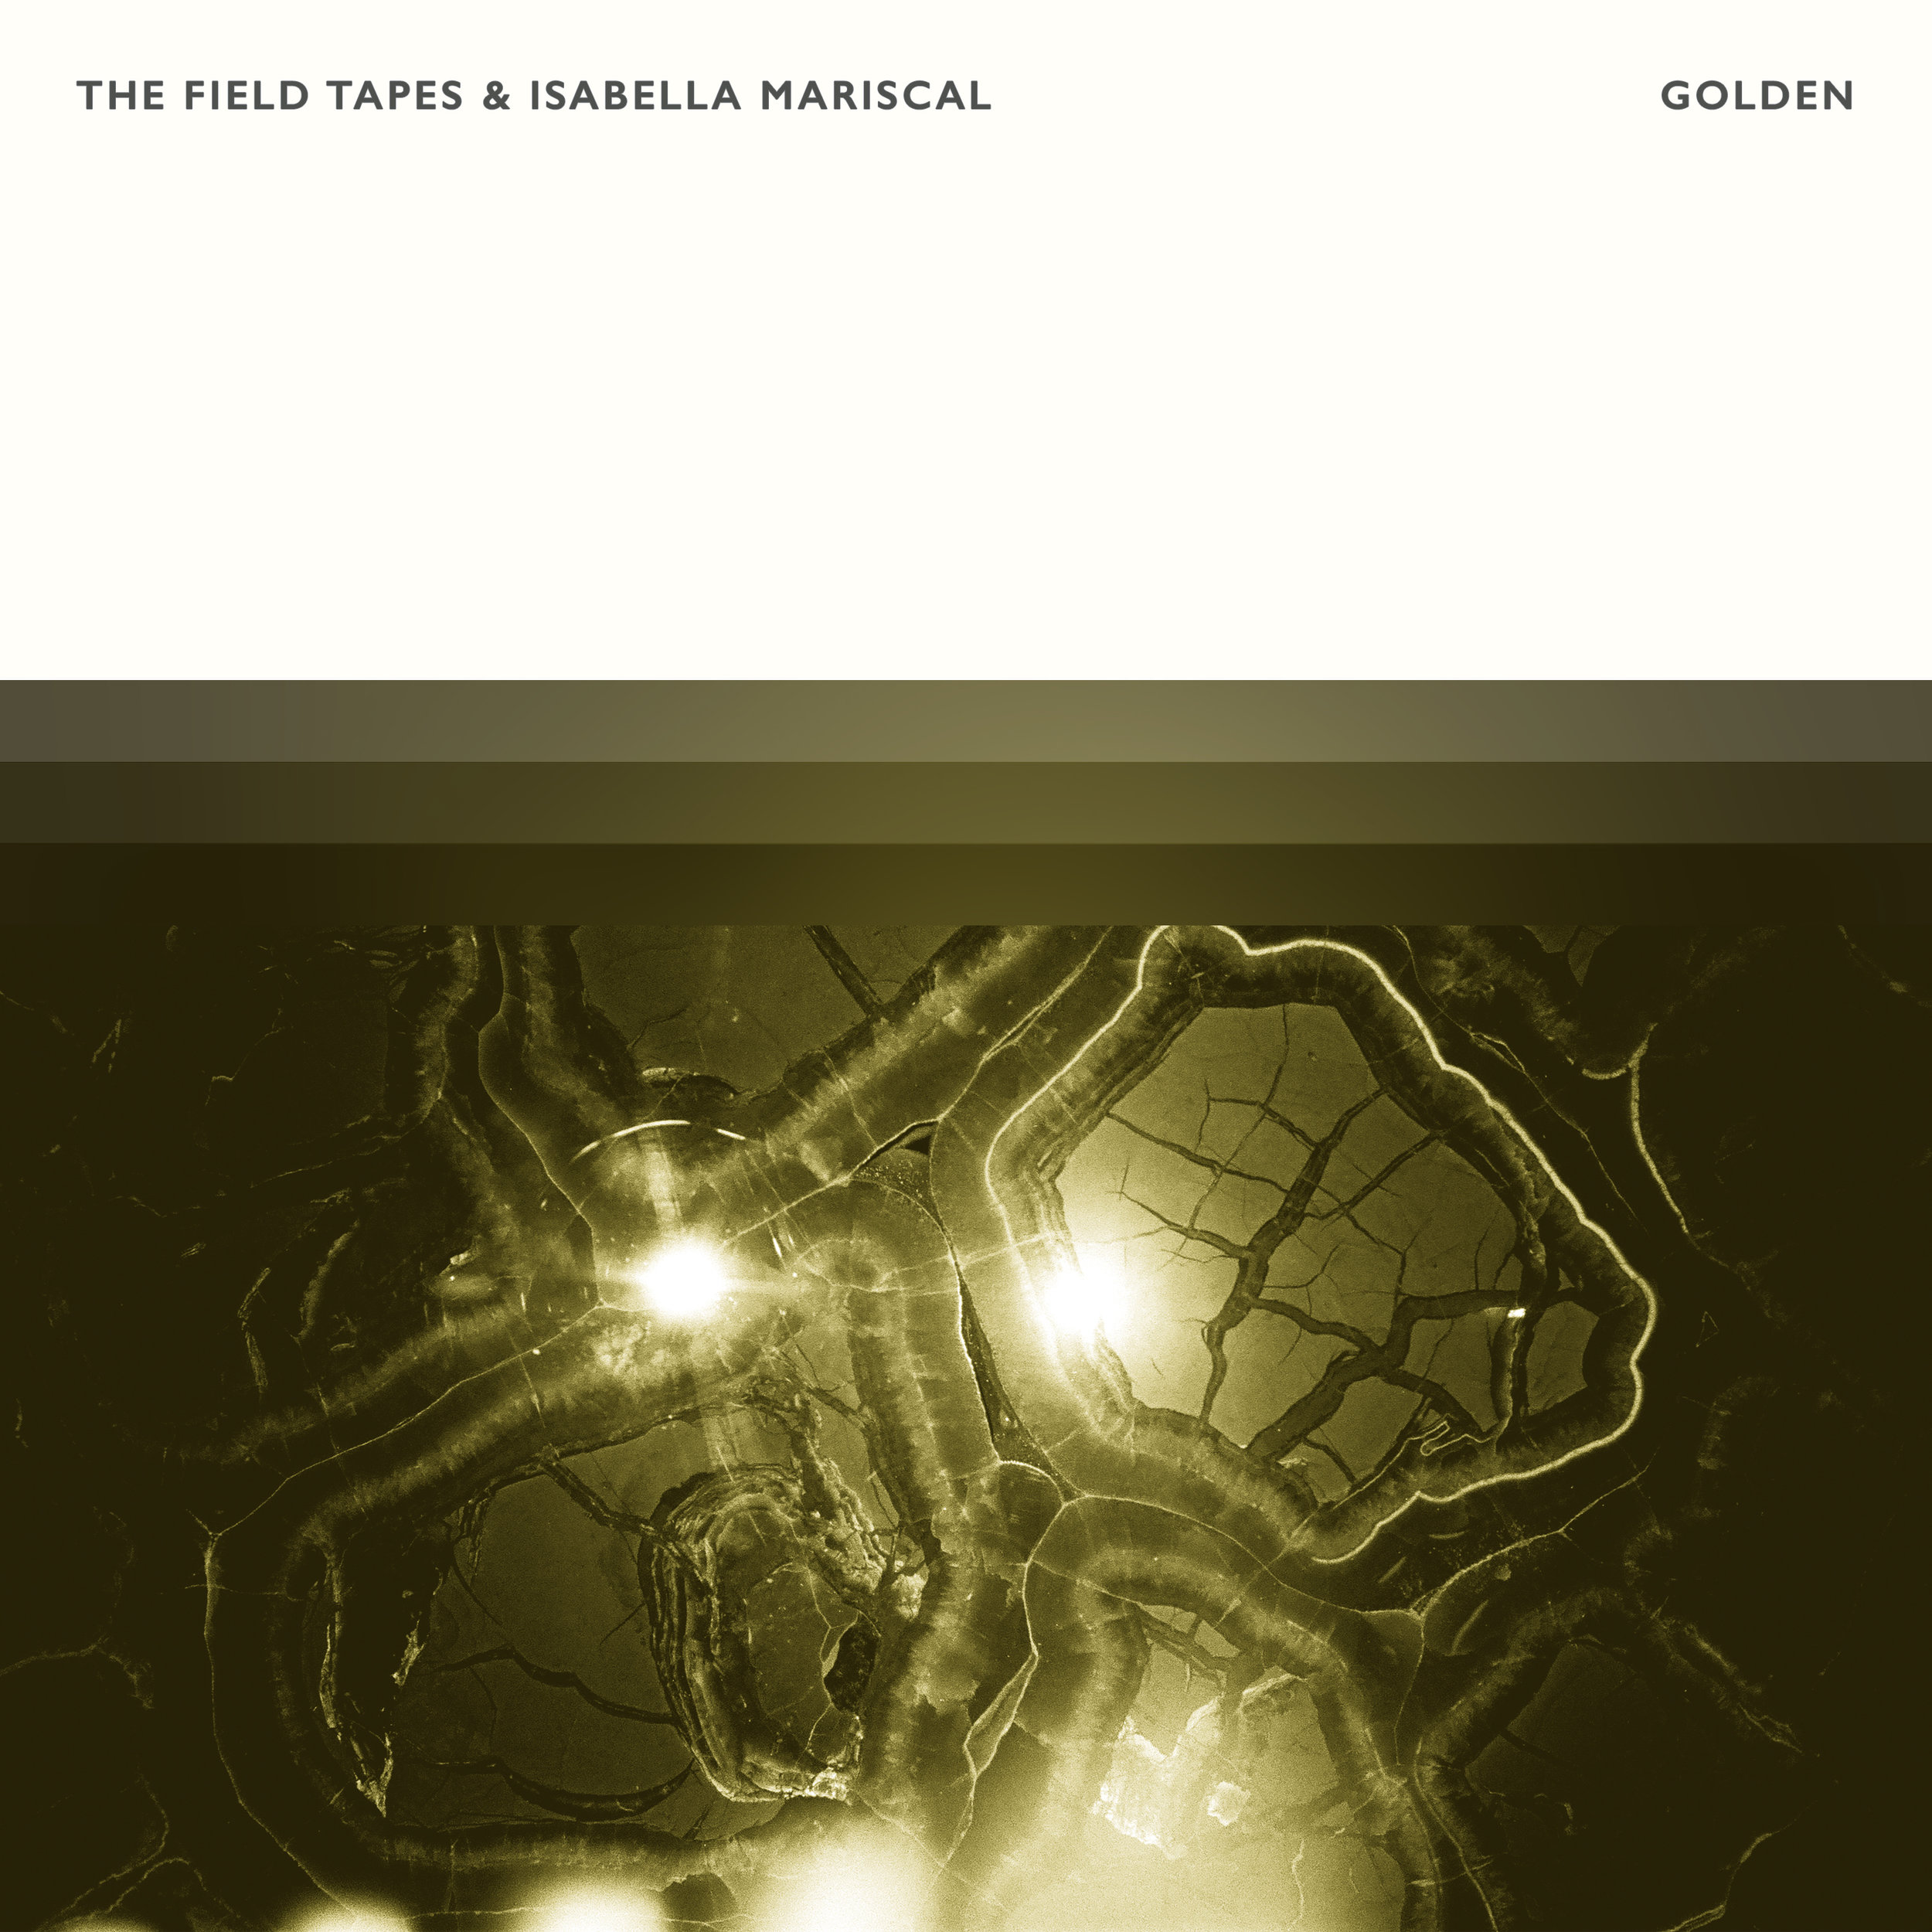 The Field Tapes & Isabella Mariscal - Golden